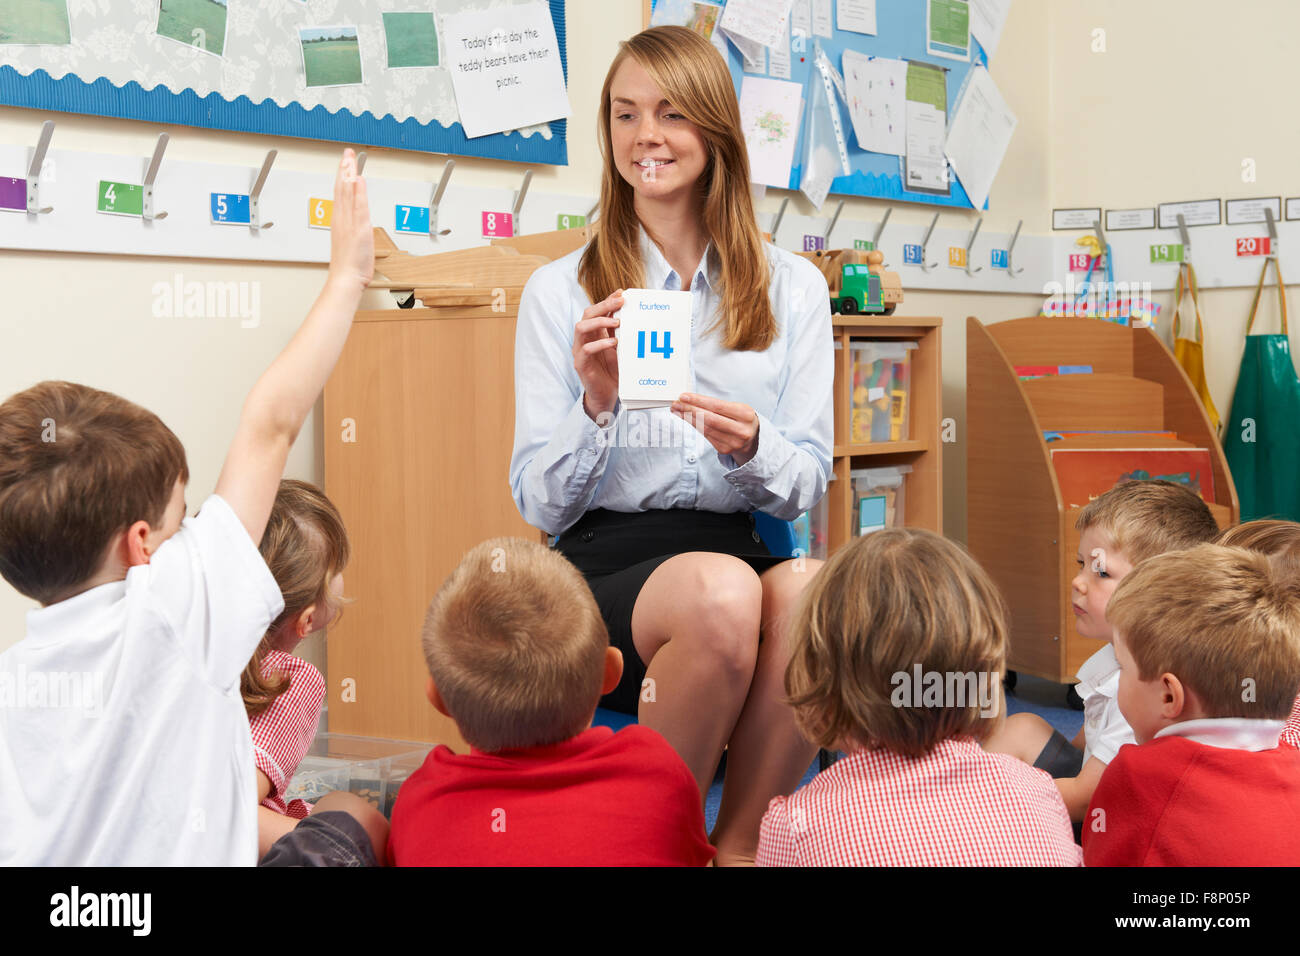 Teacher Using Flash Cards To Teach Maths To Elementary Class - Stock Image